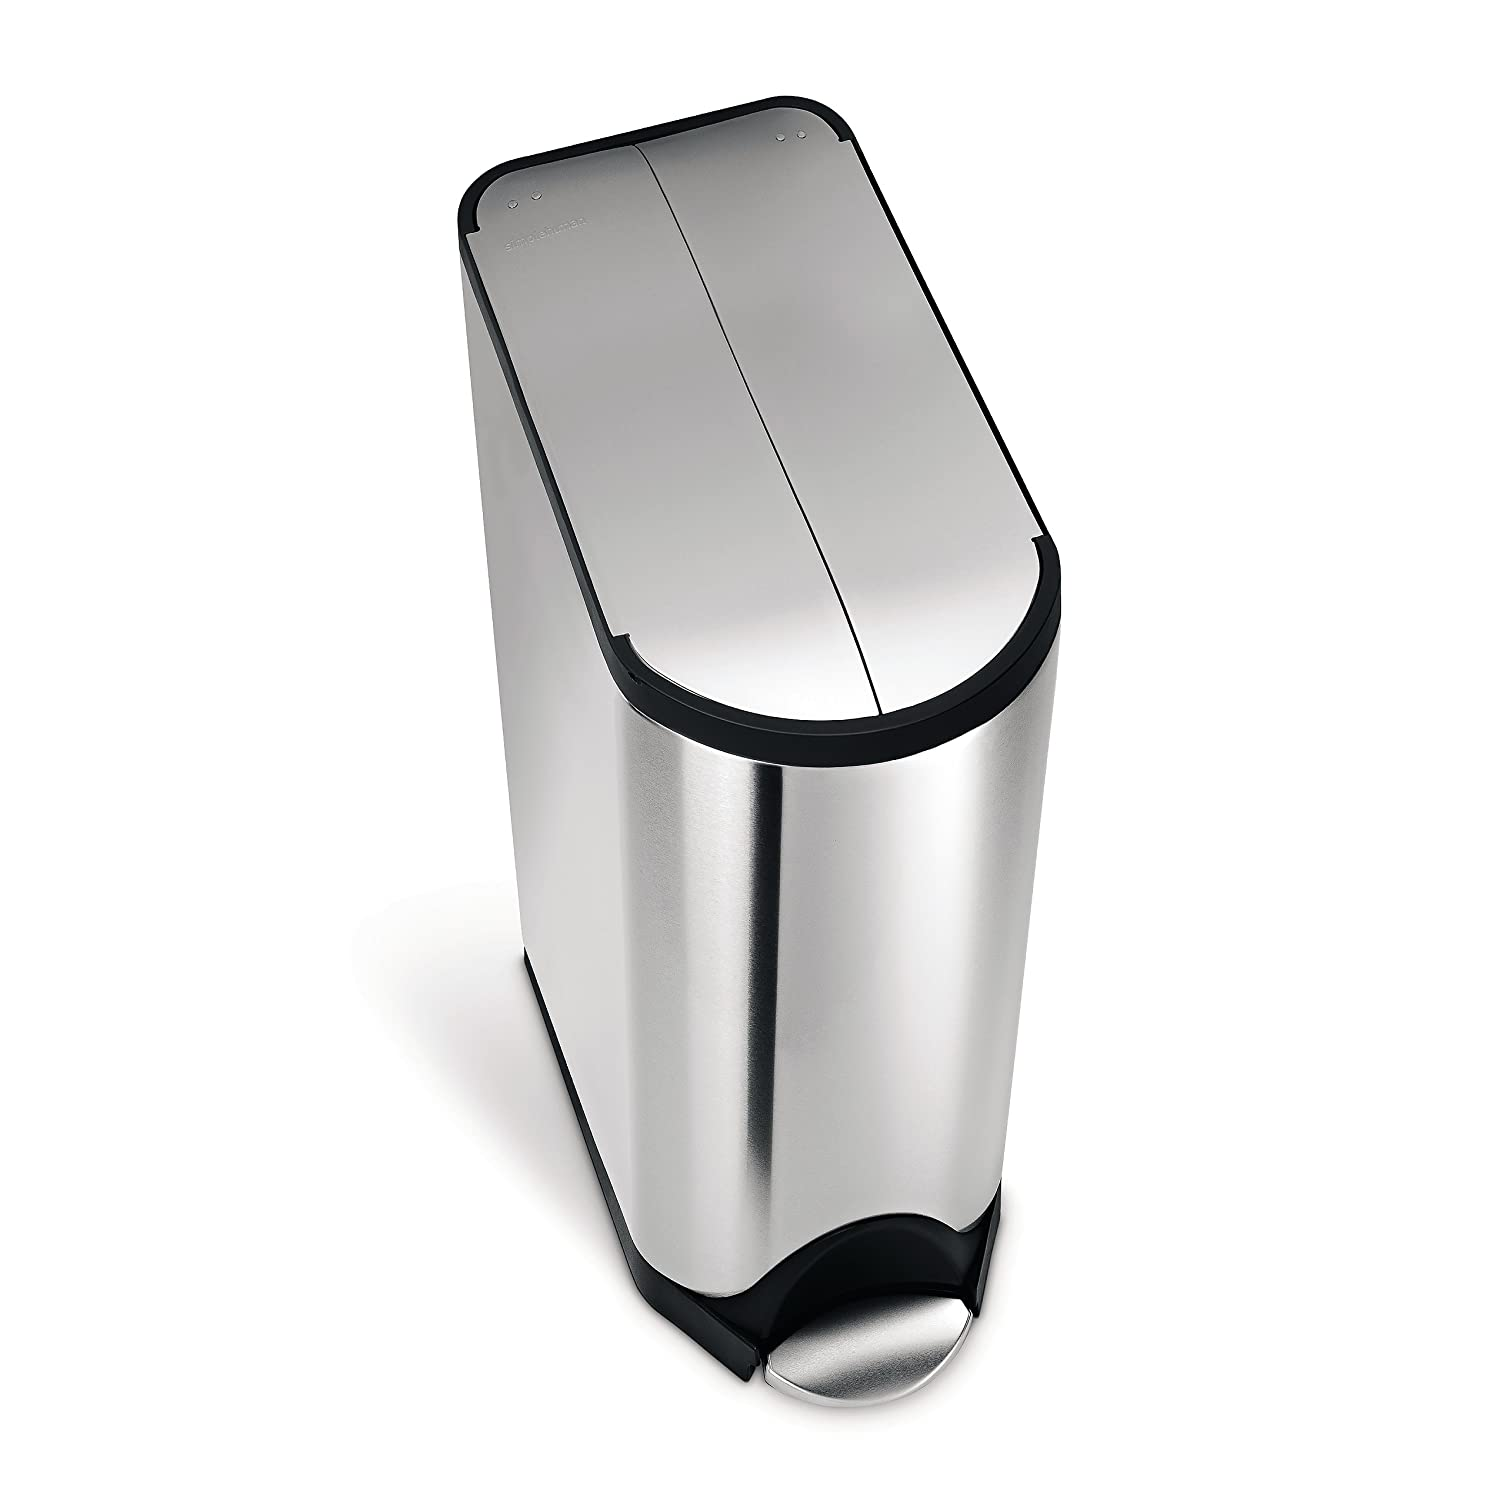 simplehuman 45 litre butterfly step trash can, black stainless steel CW2072